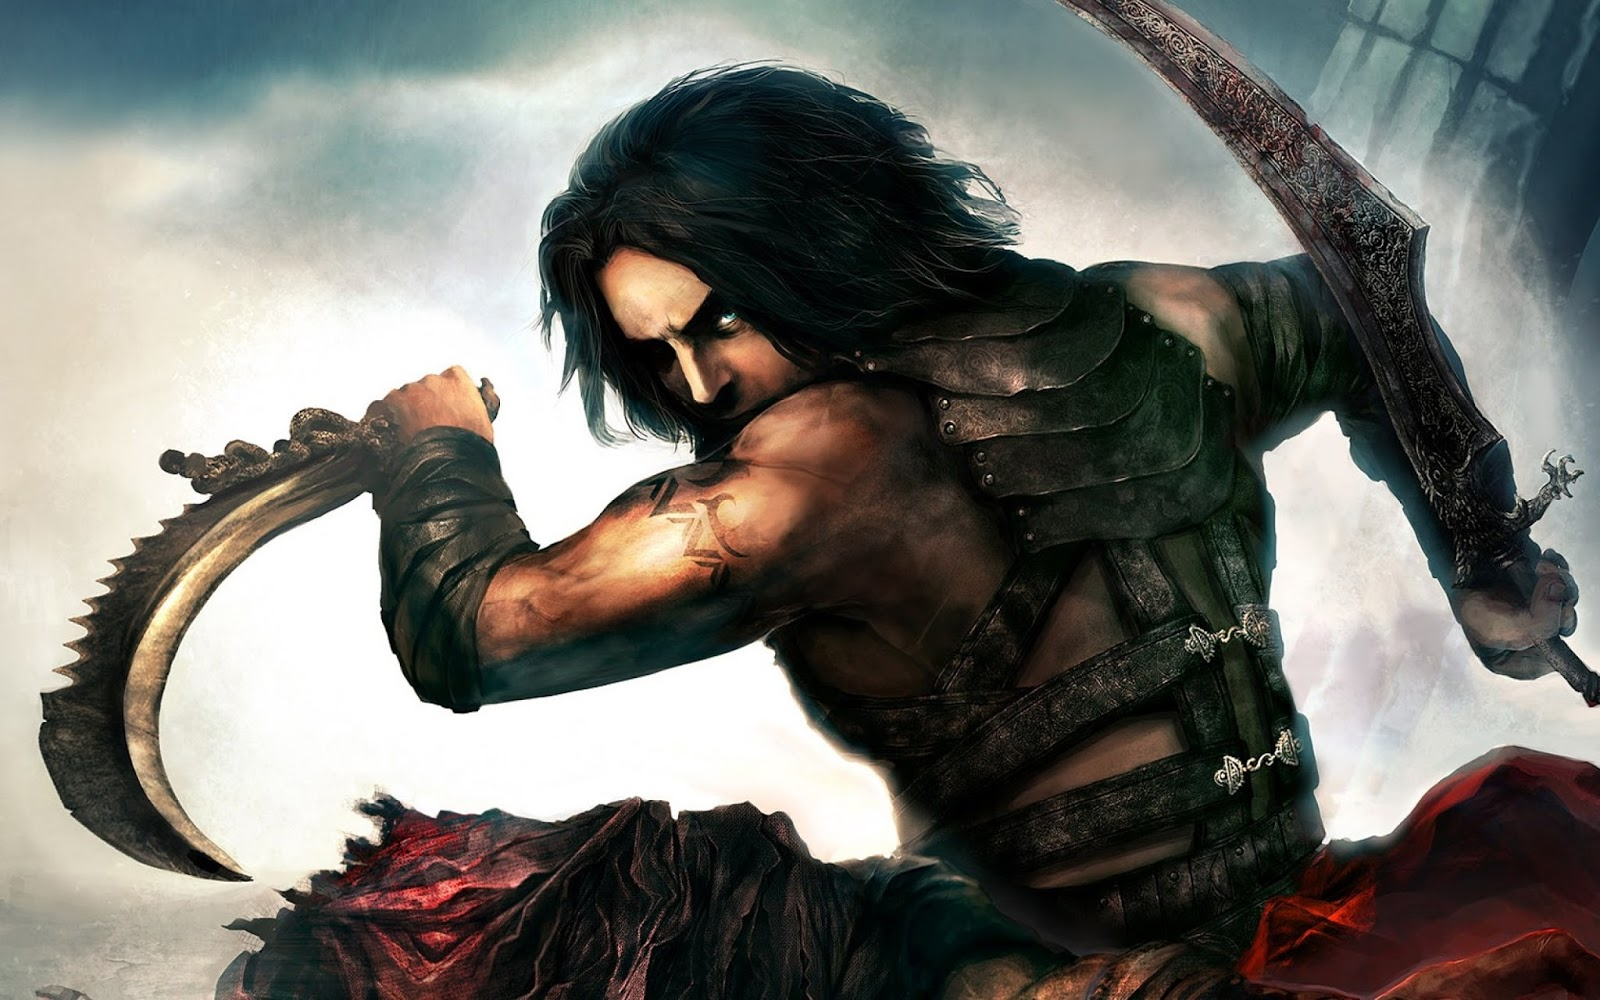 Download Prince of Persia Free PC Game Full Version - Free PC Games Ever